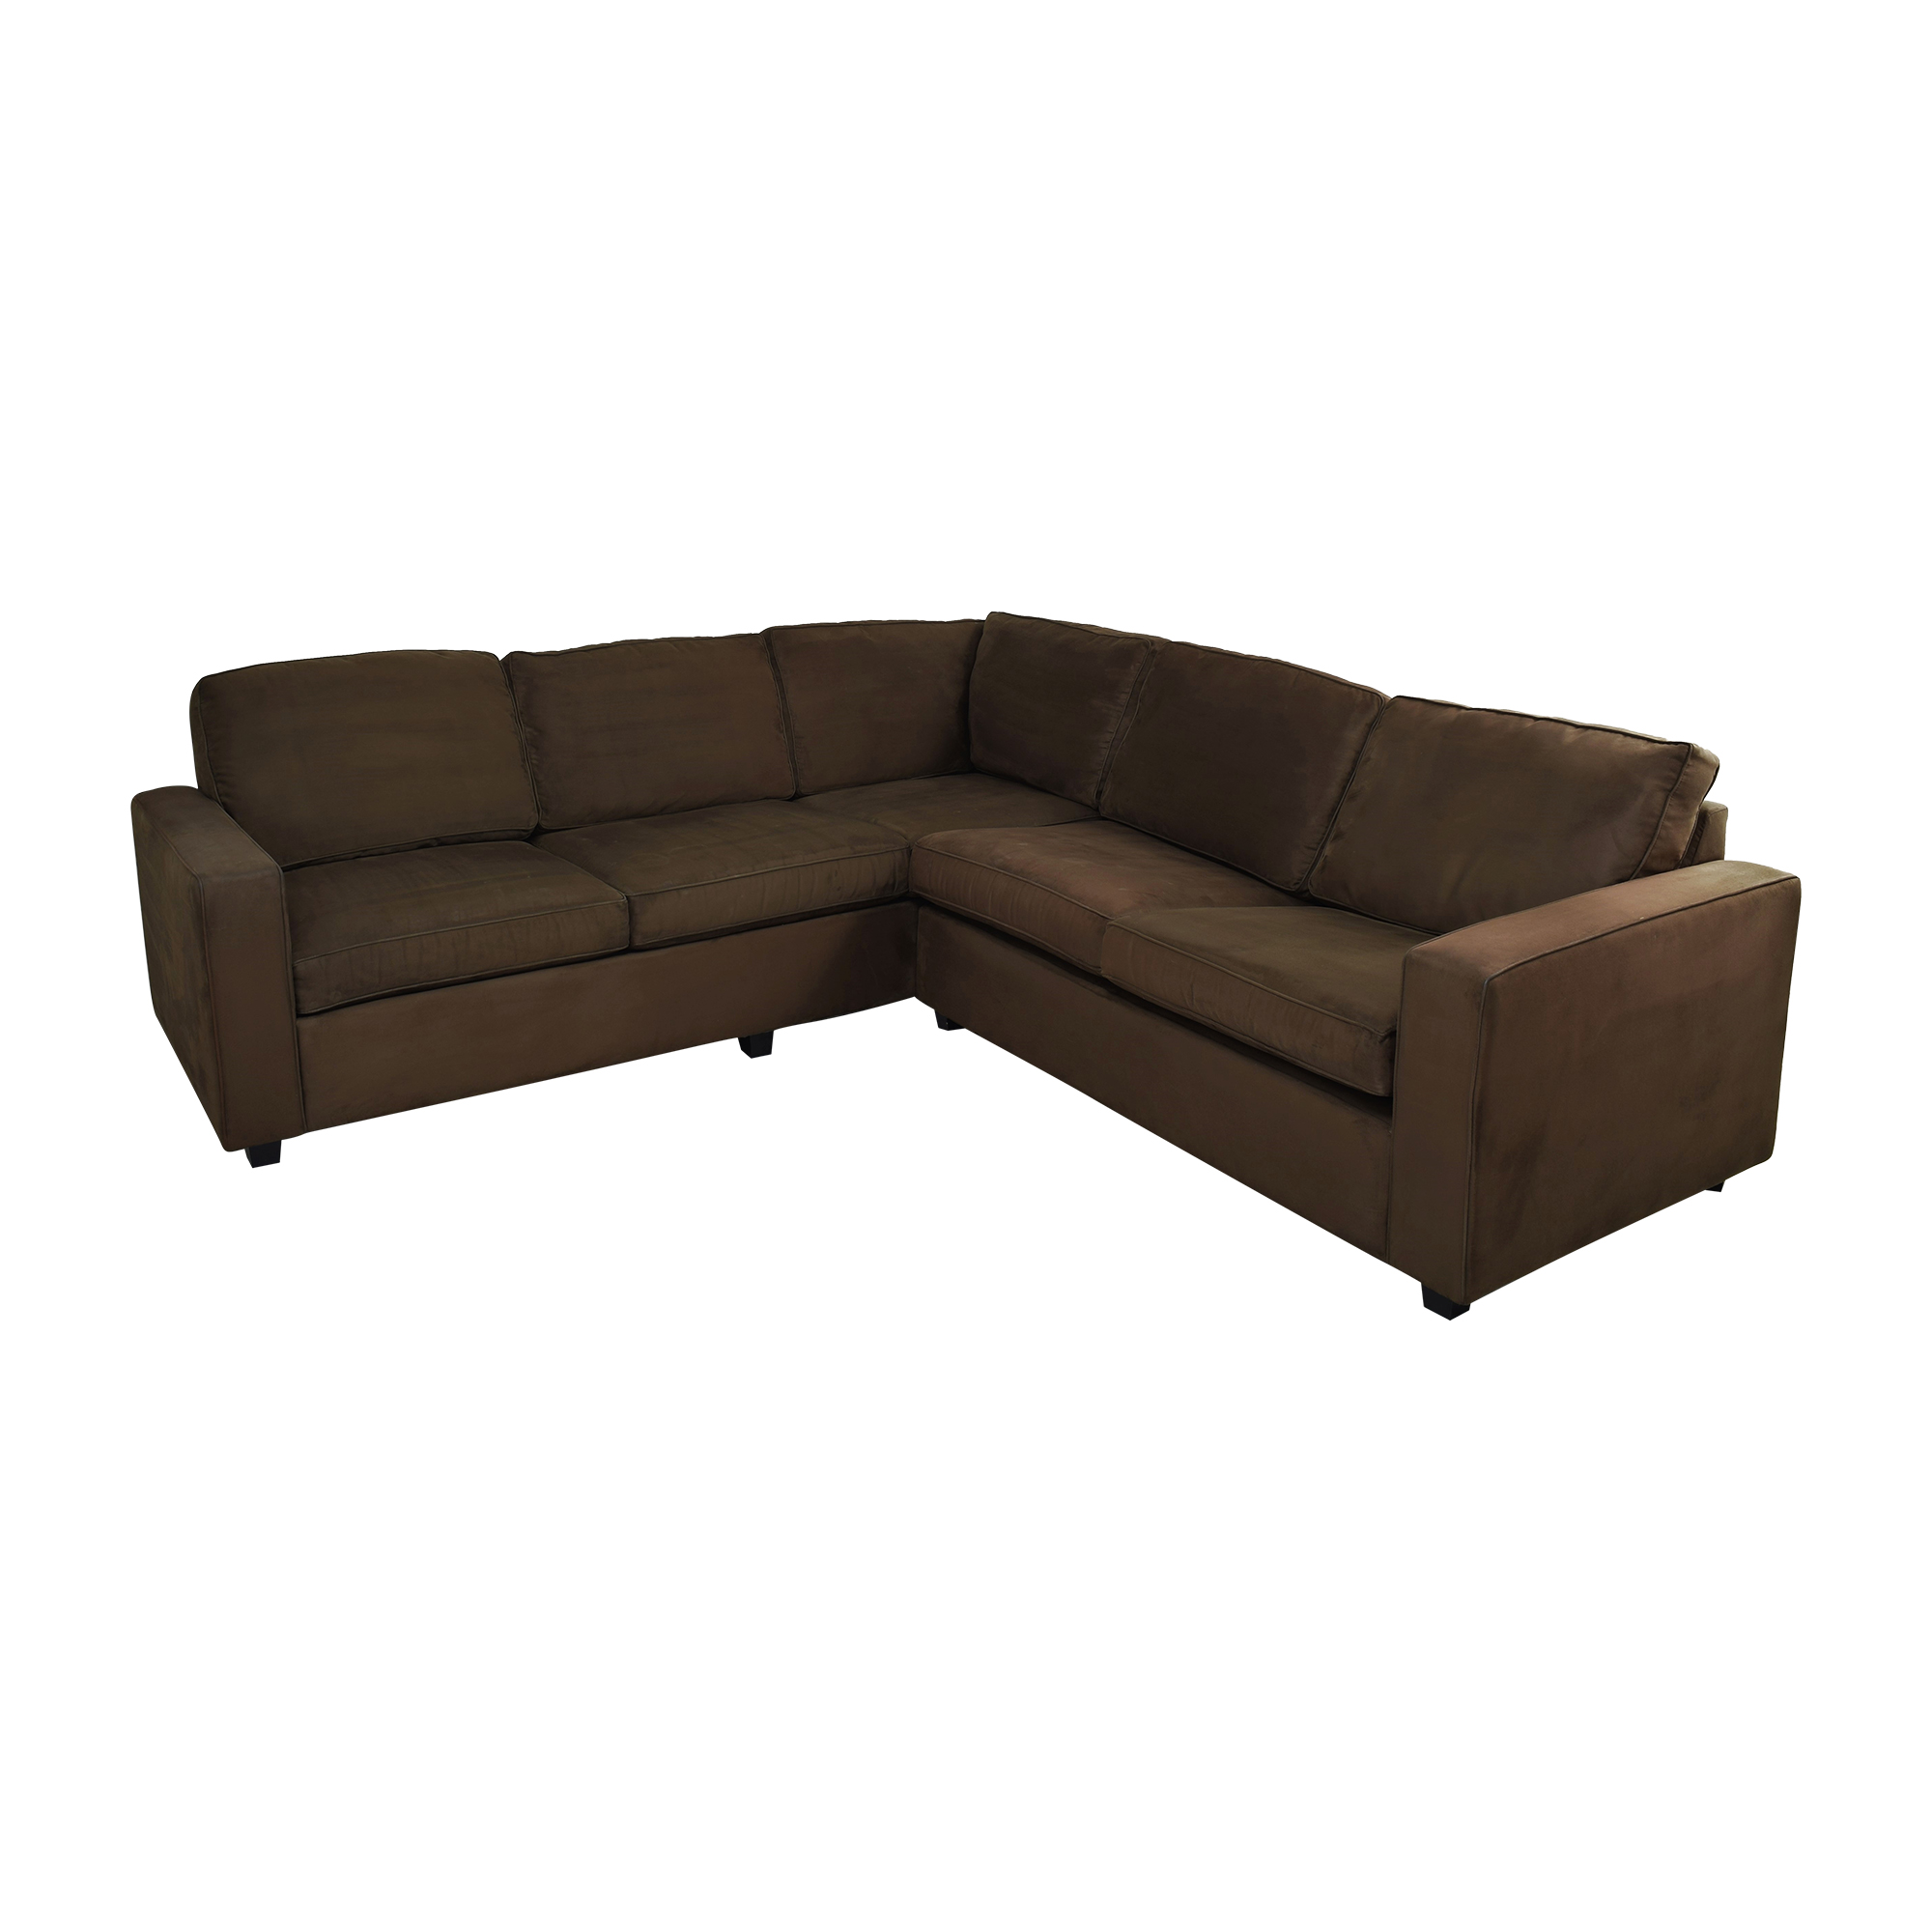 L-Shaped Sleeper Sofa brown